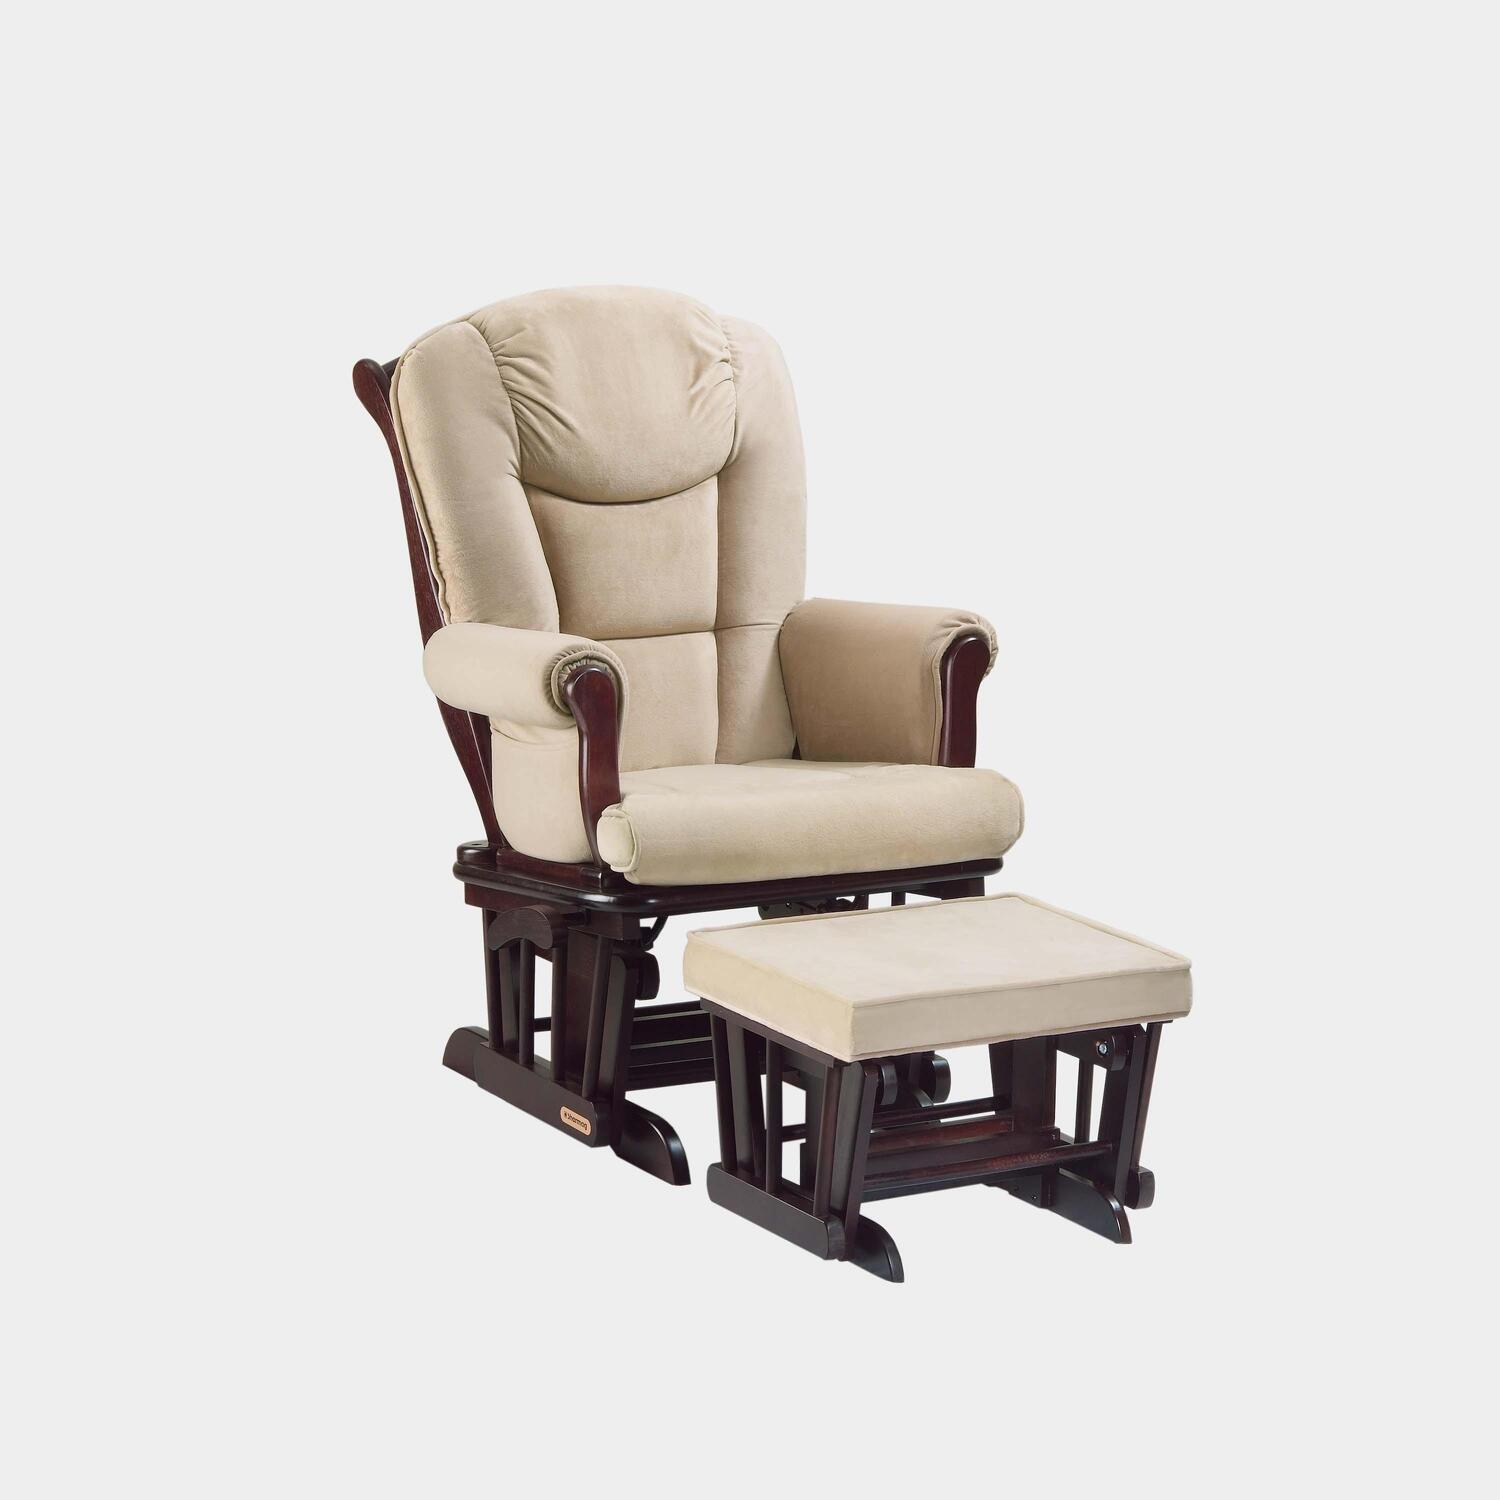 i sleigh rocking ottoman glider nursery and deluxe with home chair set multiposition naomi